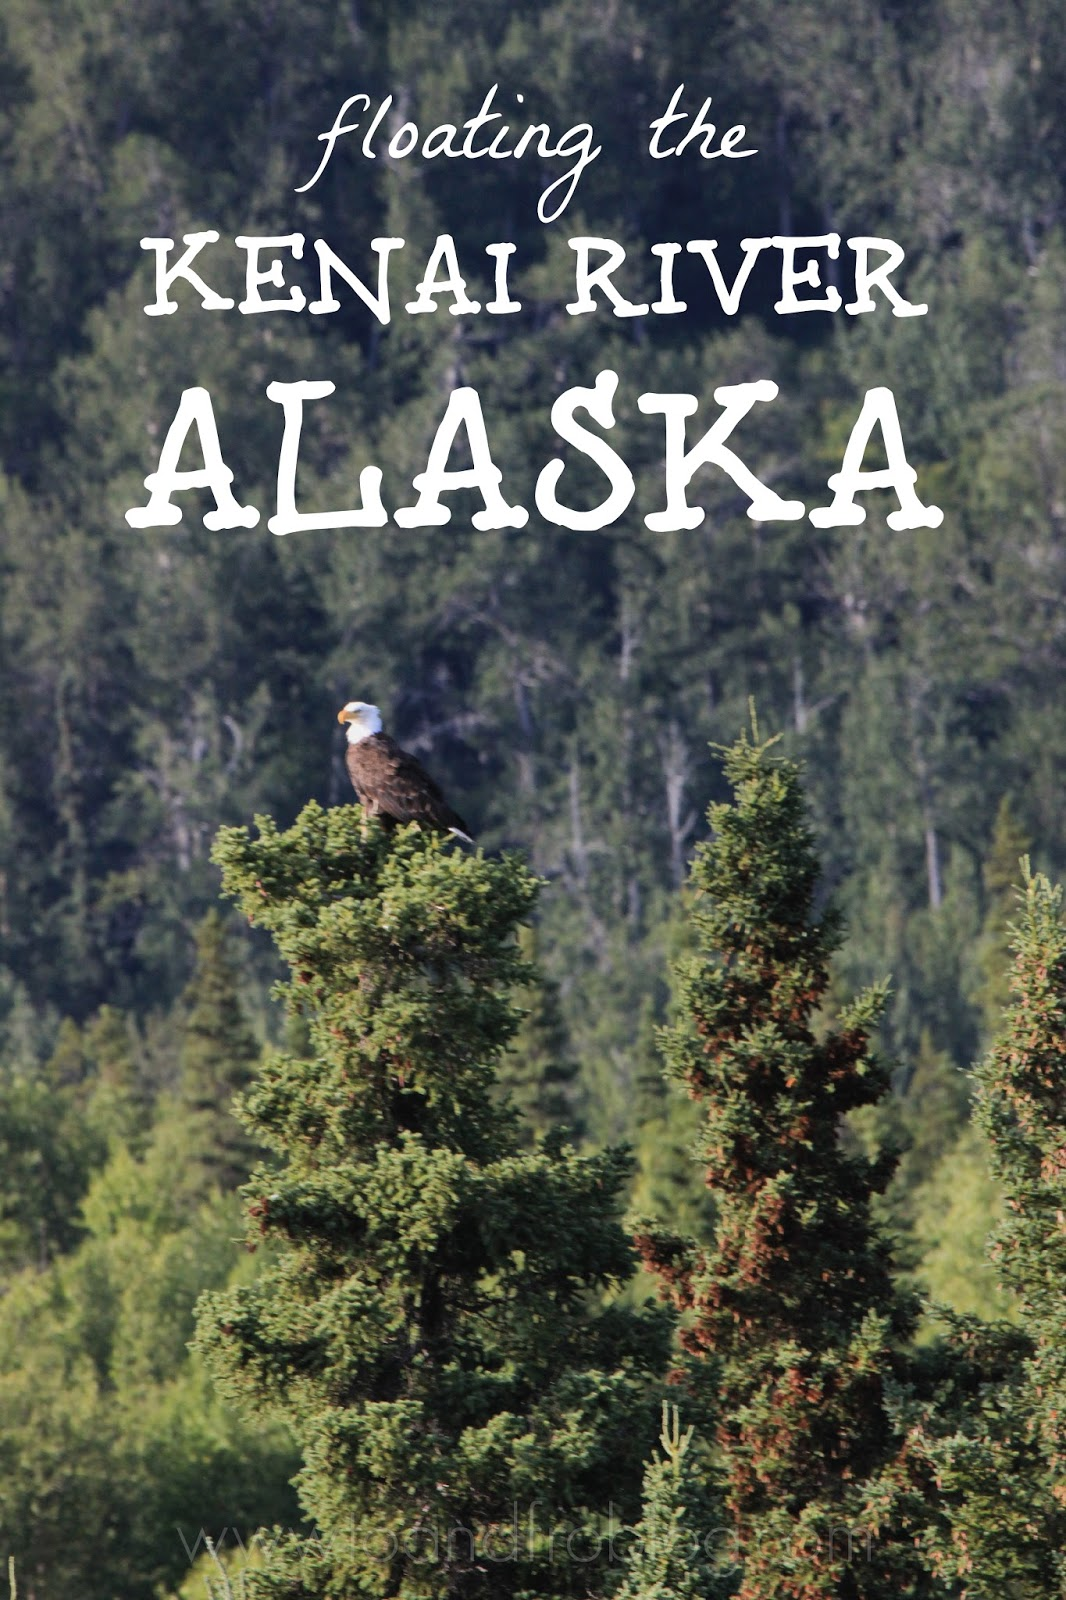 kenai river alaska float trip